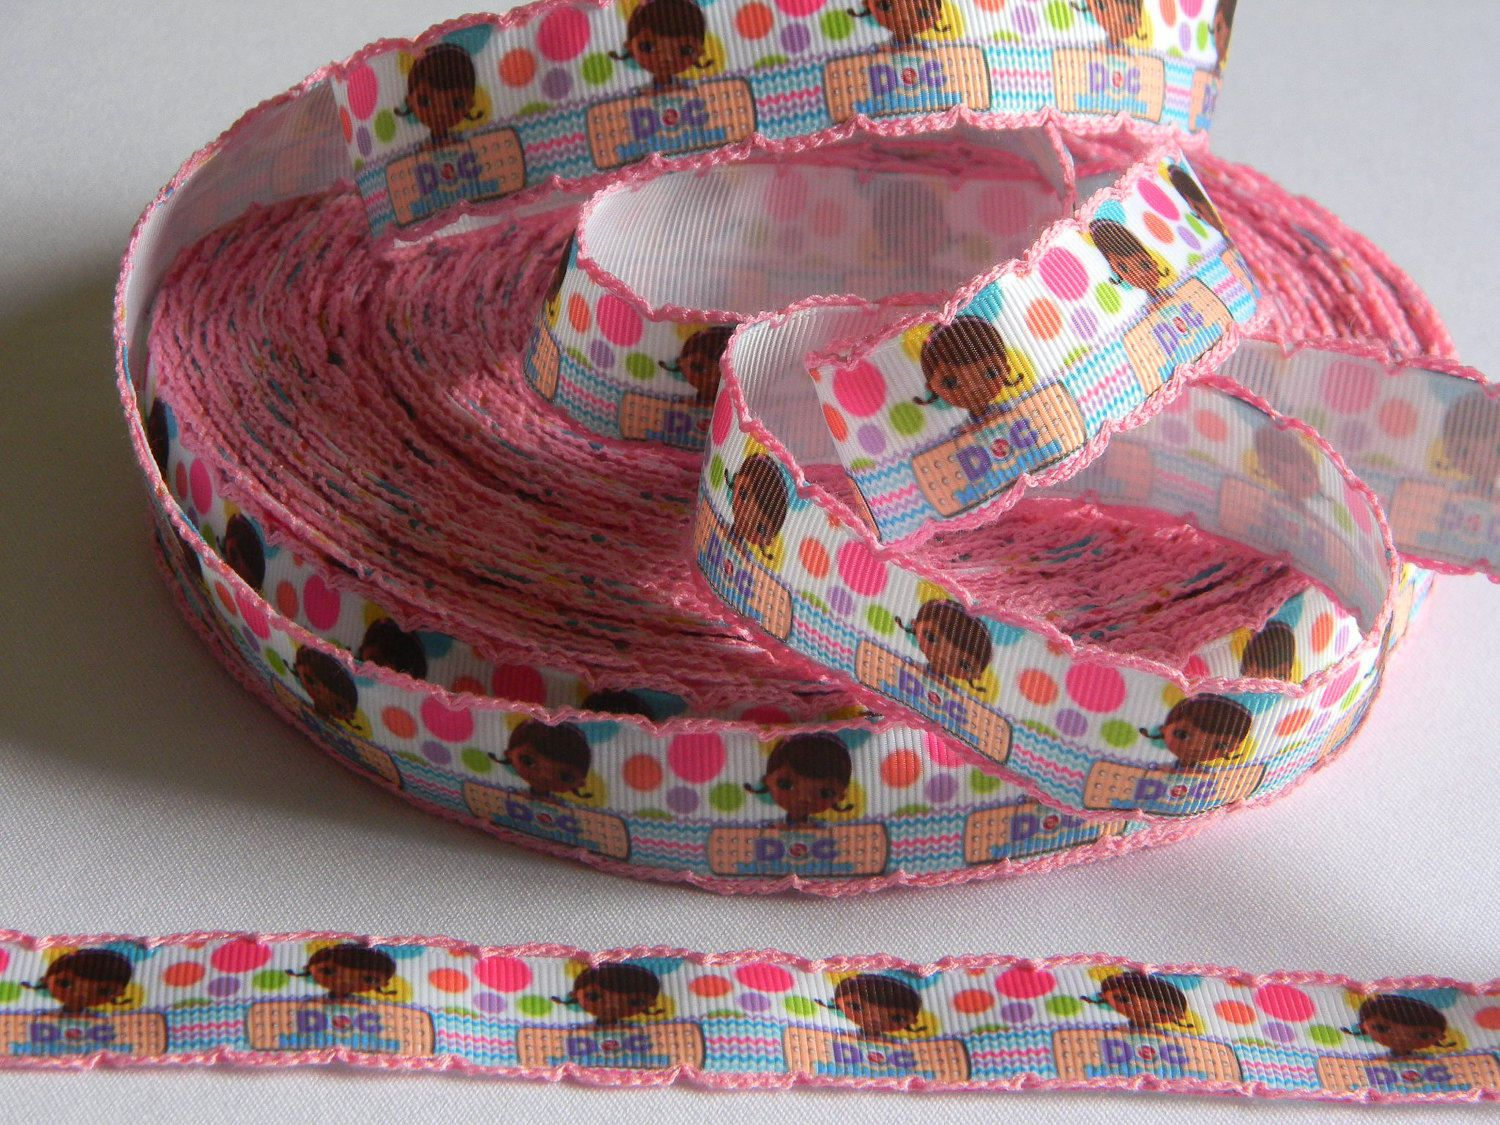 """Doc McStuffins Grosgrain Ribbon 5 yards of 1"""" Disney Print White Ribbon with Scallop Edge for Girls Hair Bows Multi Colored Jumbo Polka Dots by HouseofHairDecor on Etsy"""